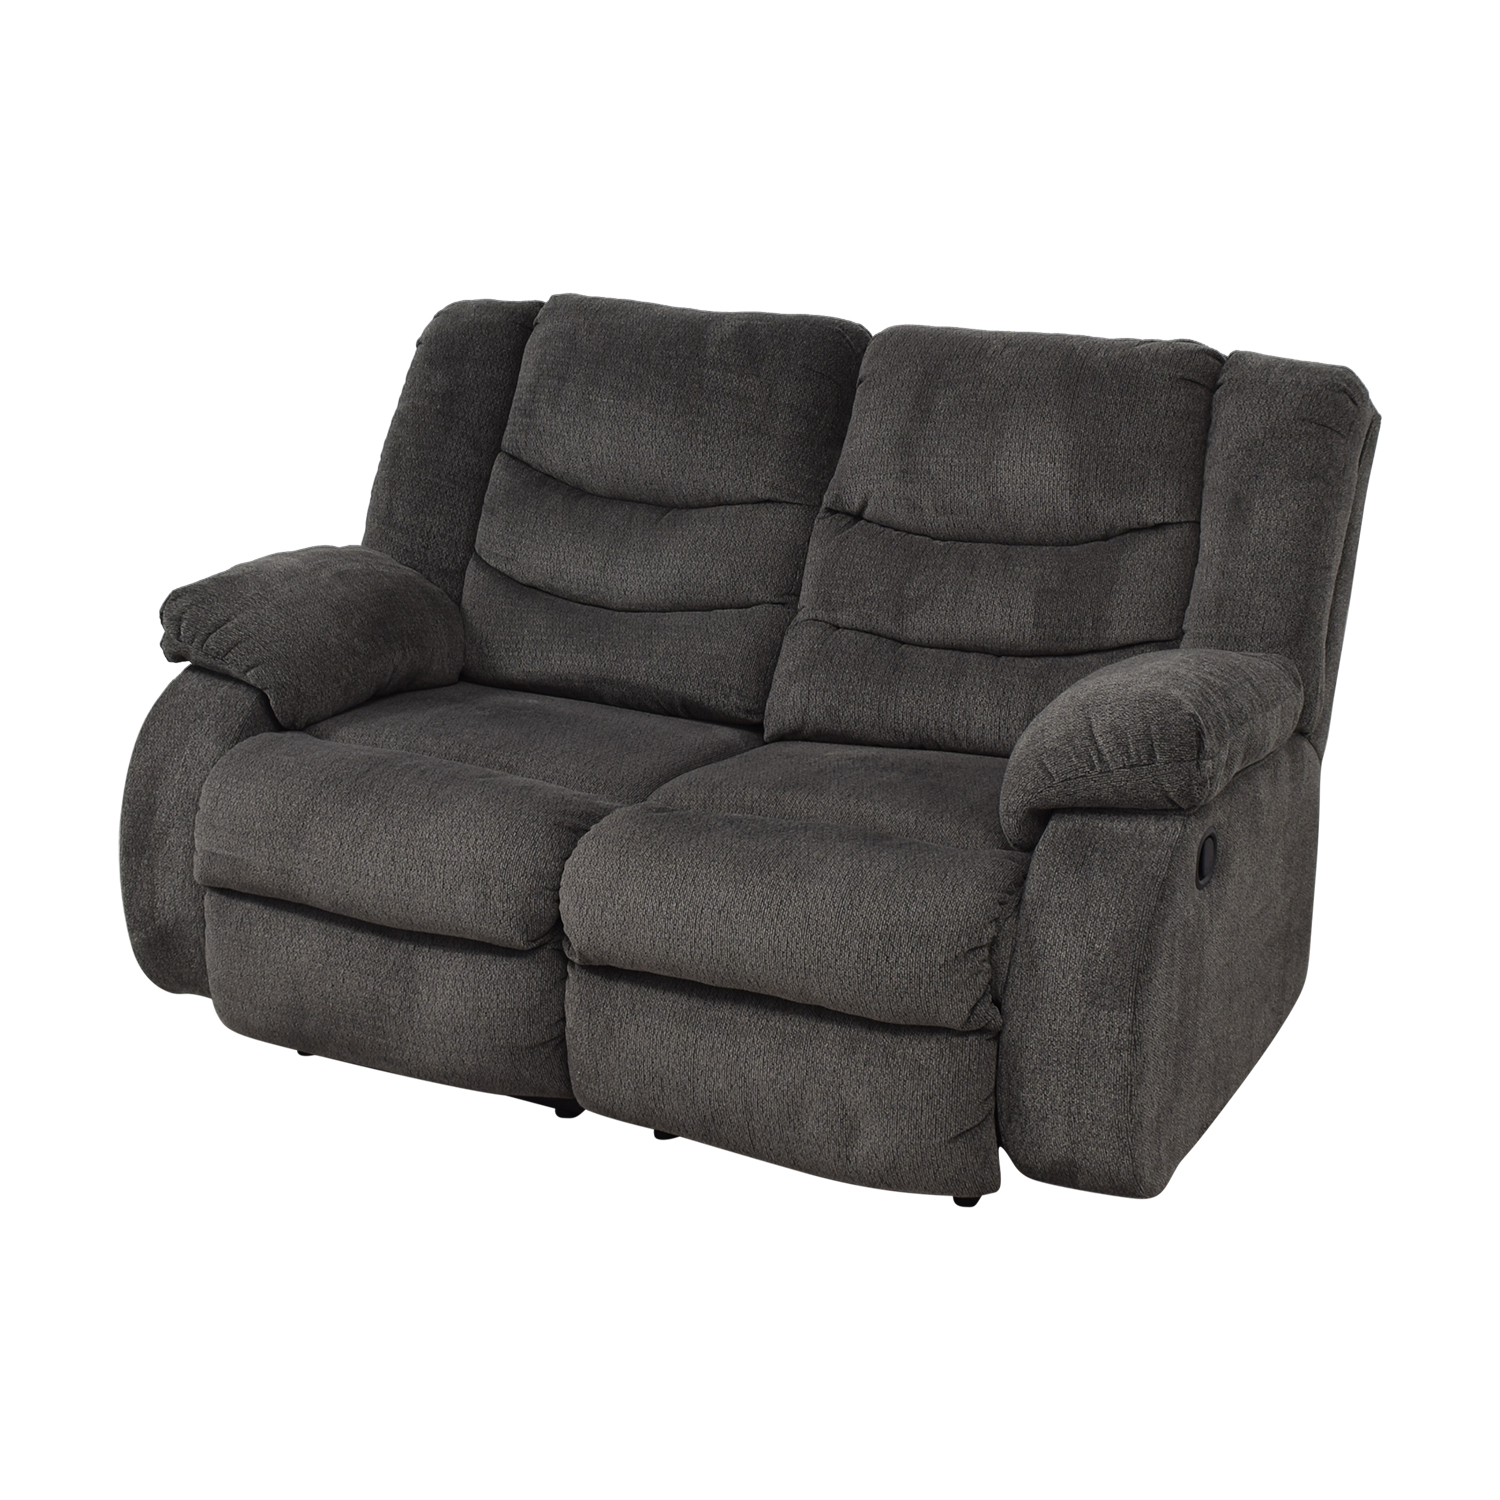 Ashley Furniture Ashley Furniture Gray Reclining Loveseat